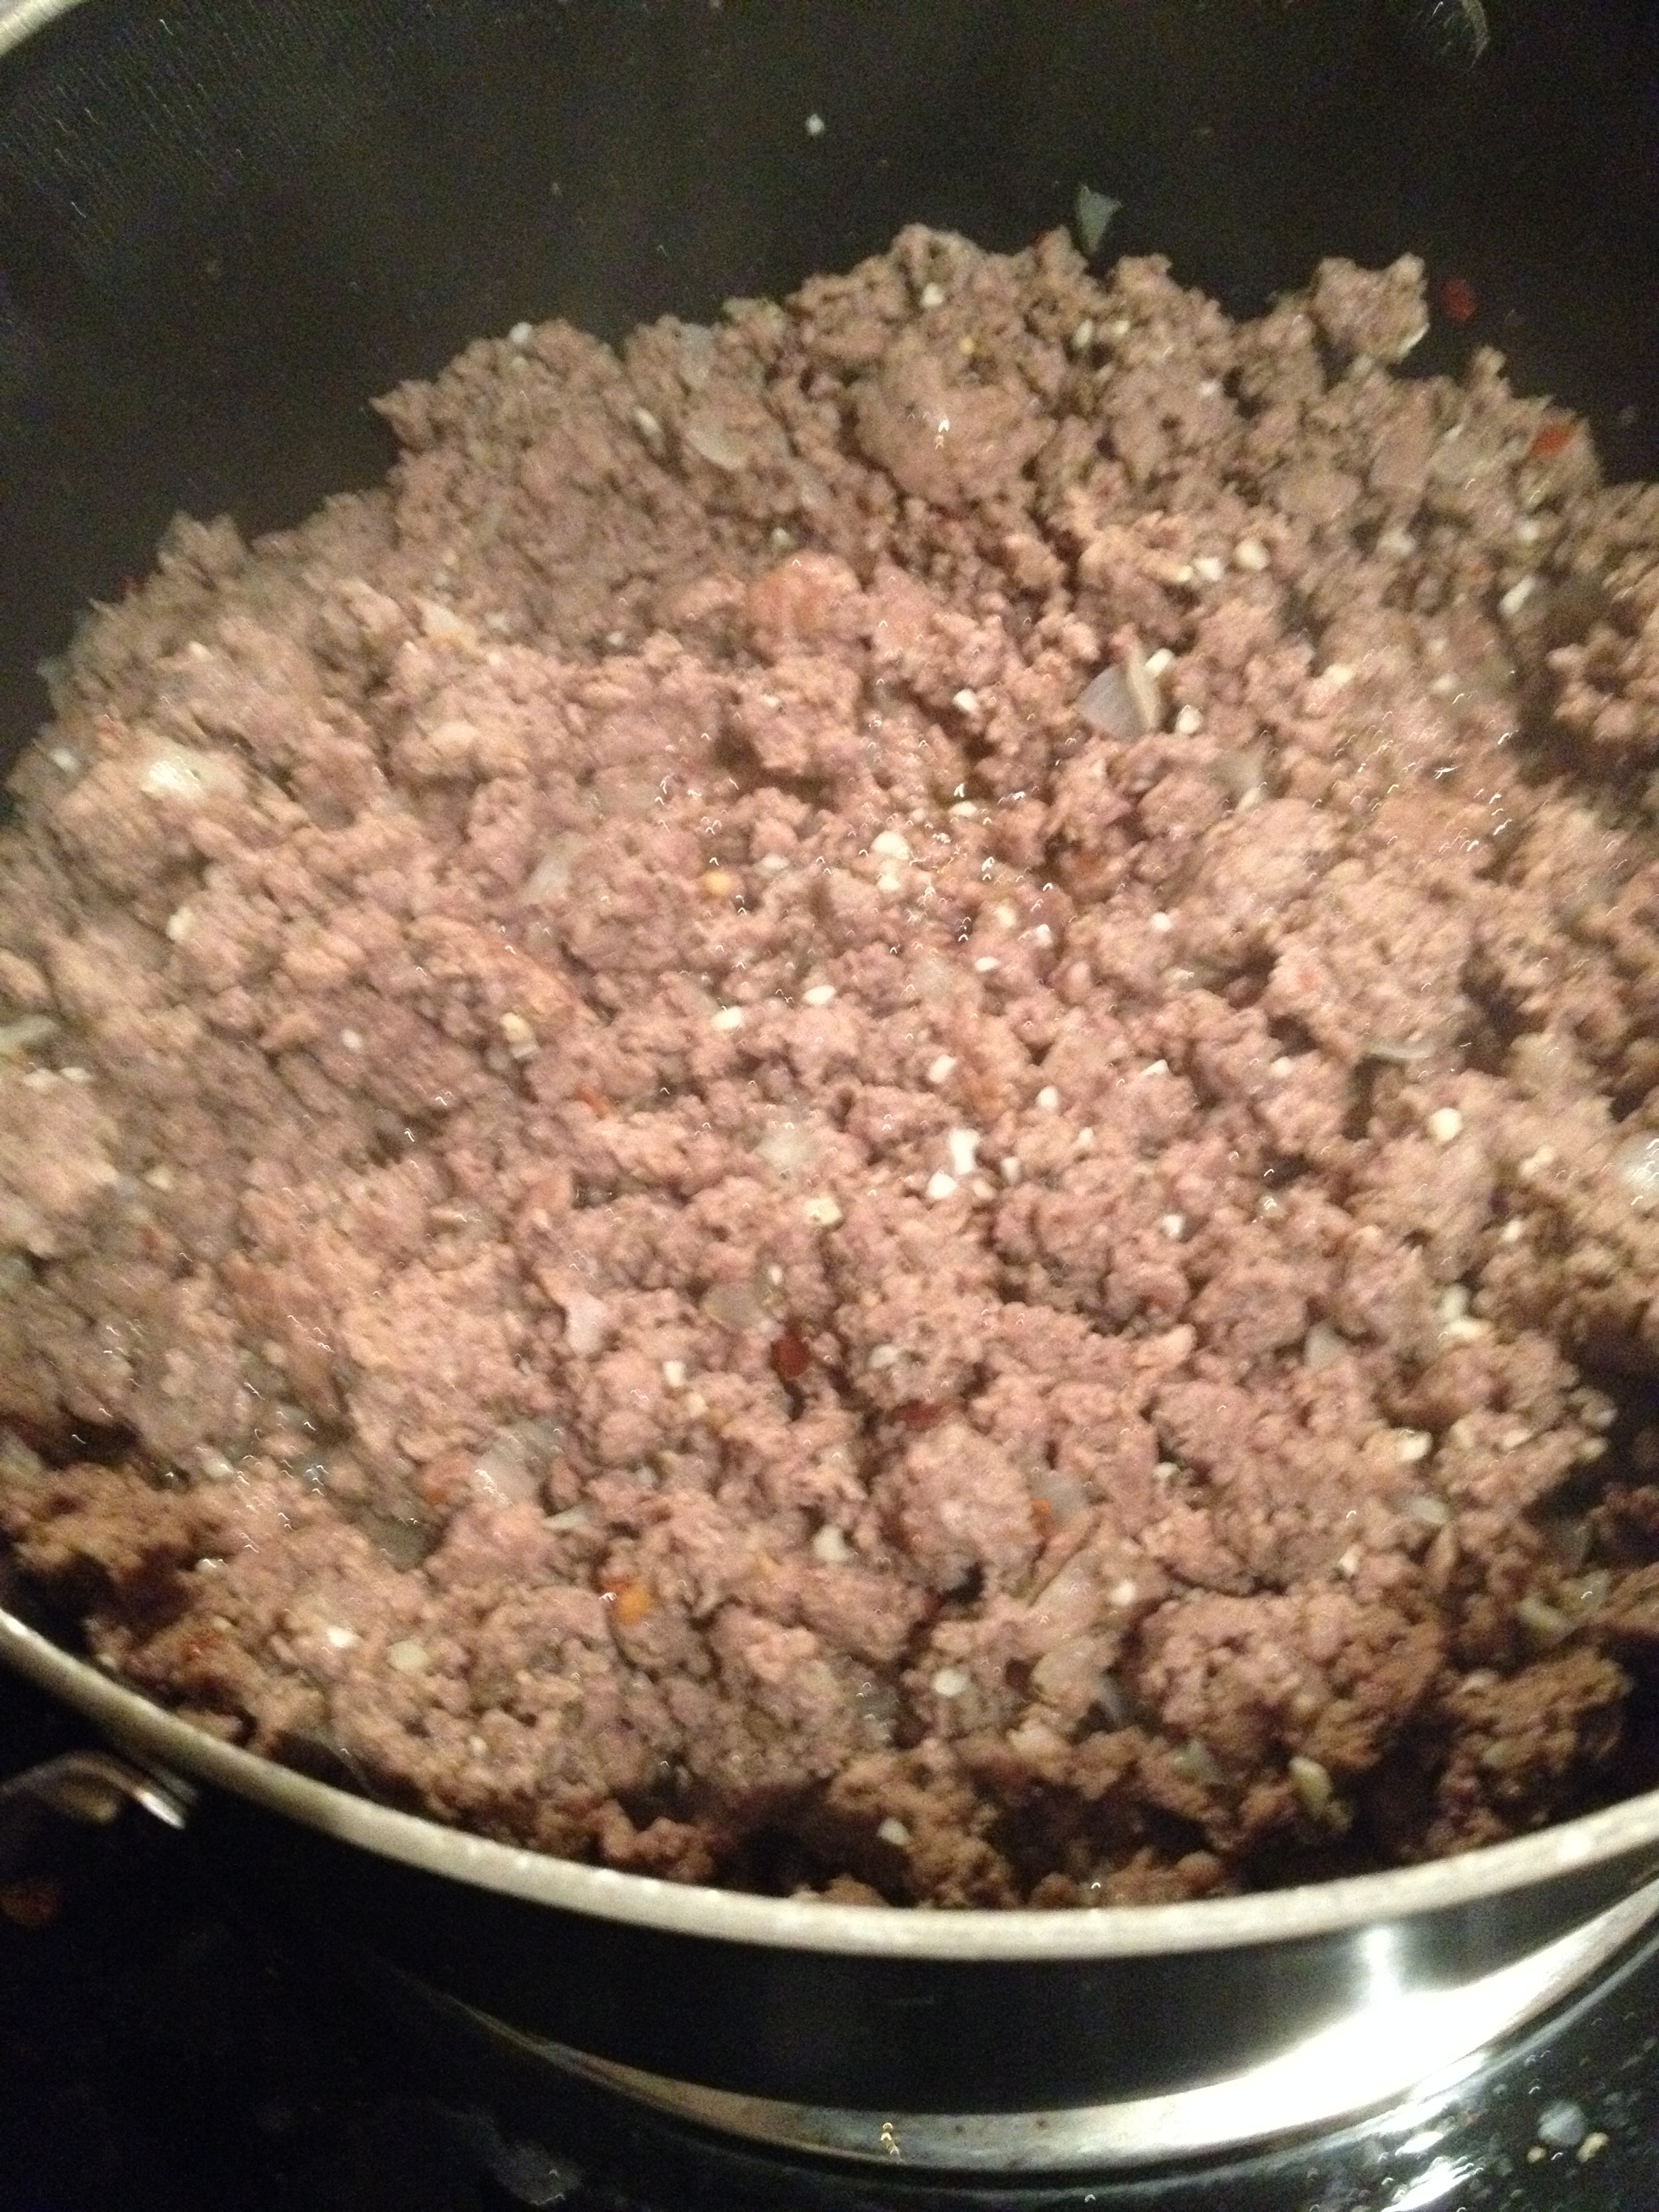 Brown yo' meat first! I mixed in salt, pepper, 1/4 cup of diced white onion, 1 T each of basil and oregano.